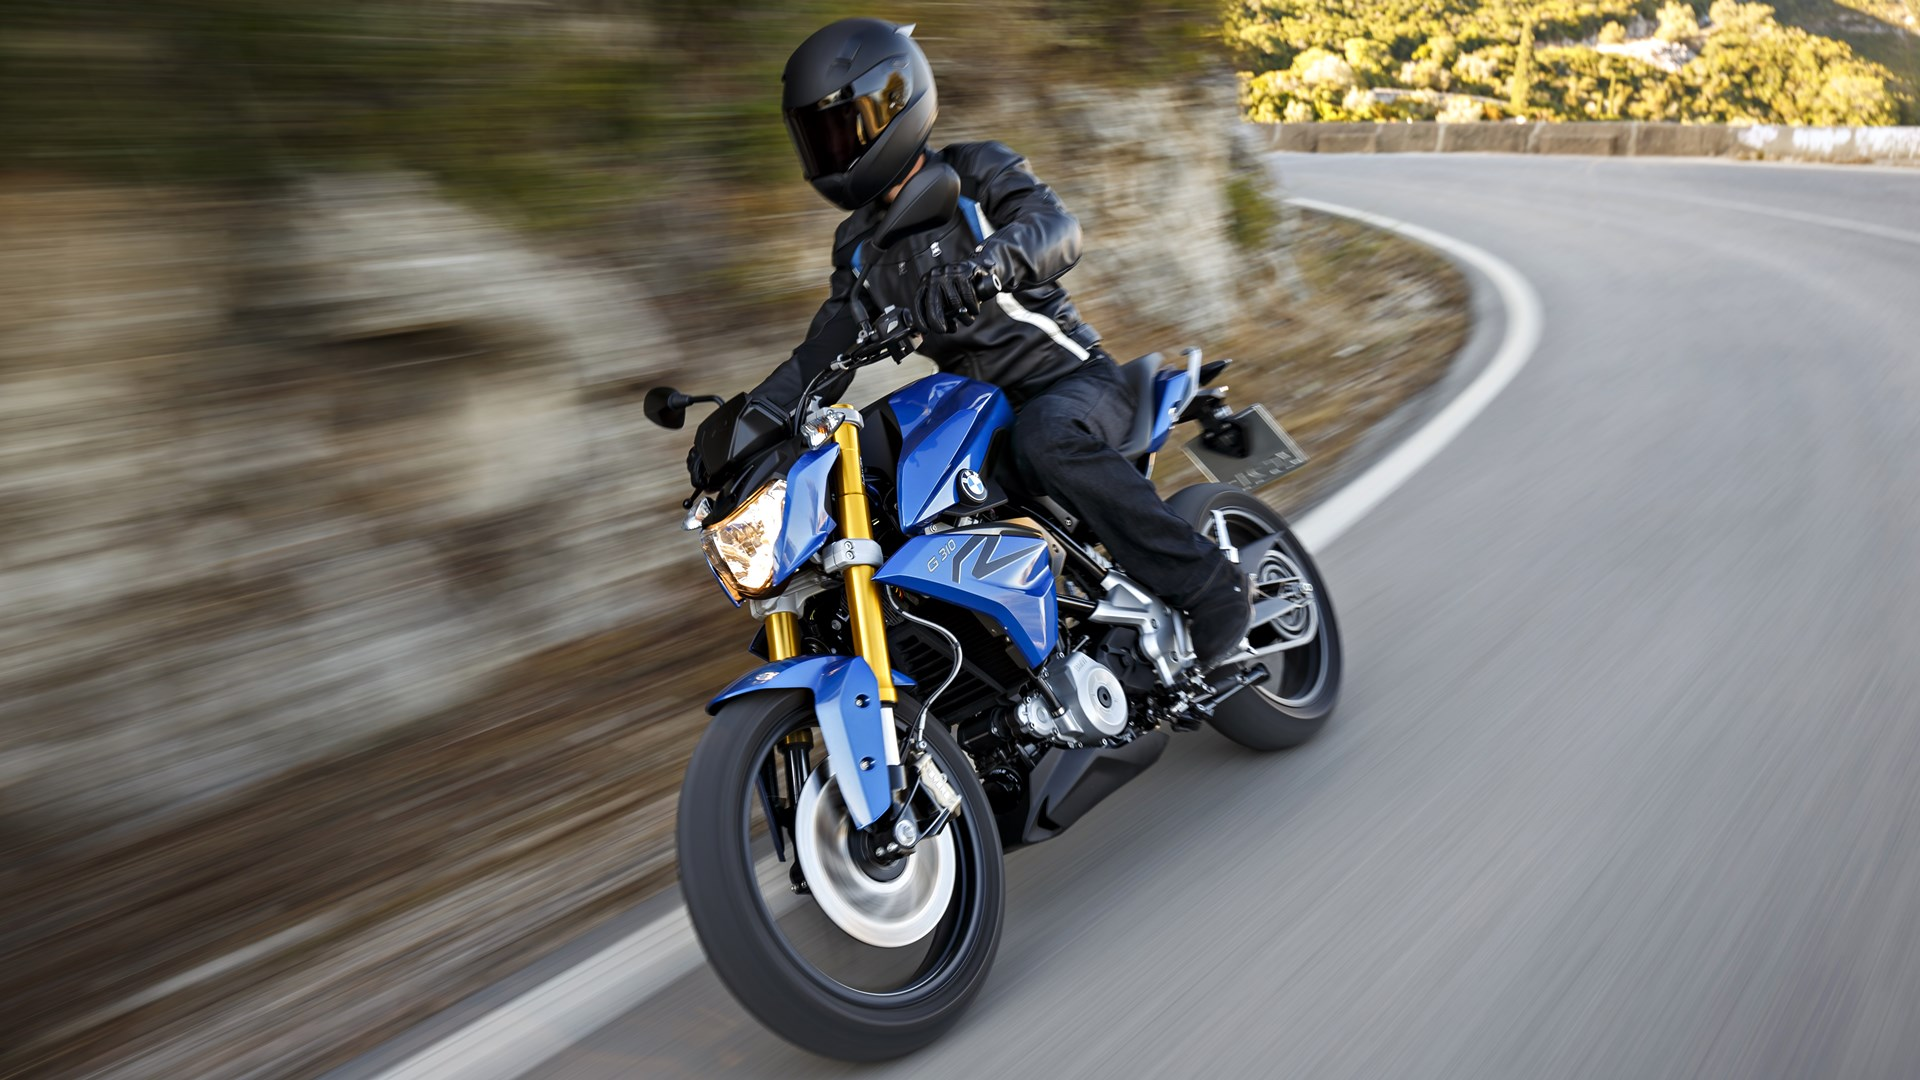 BMW G310R Production Begins At TVS Facility